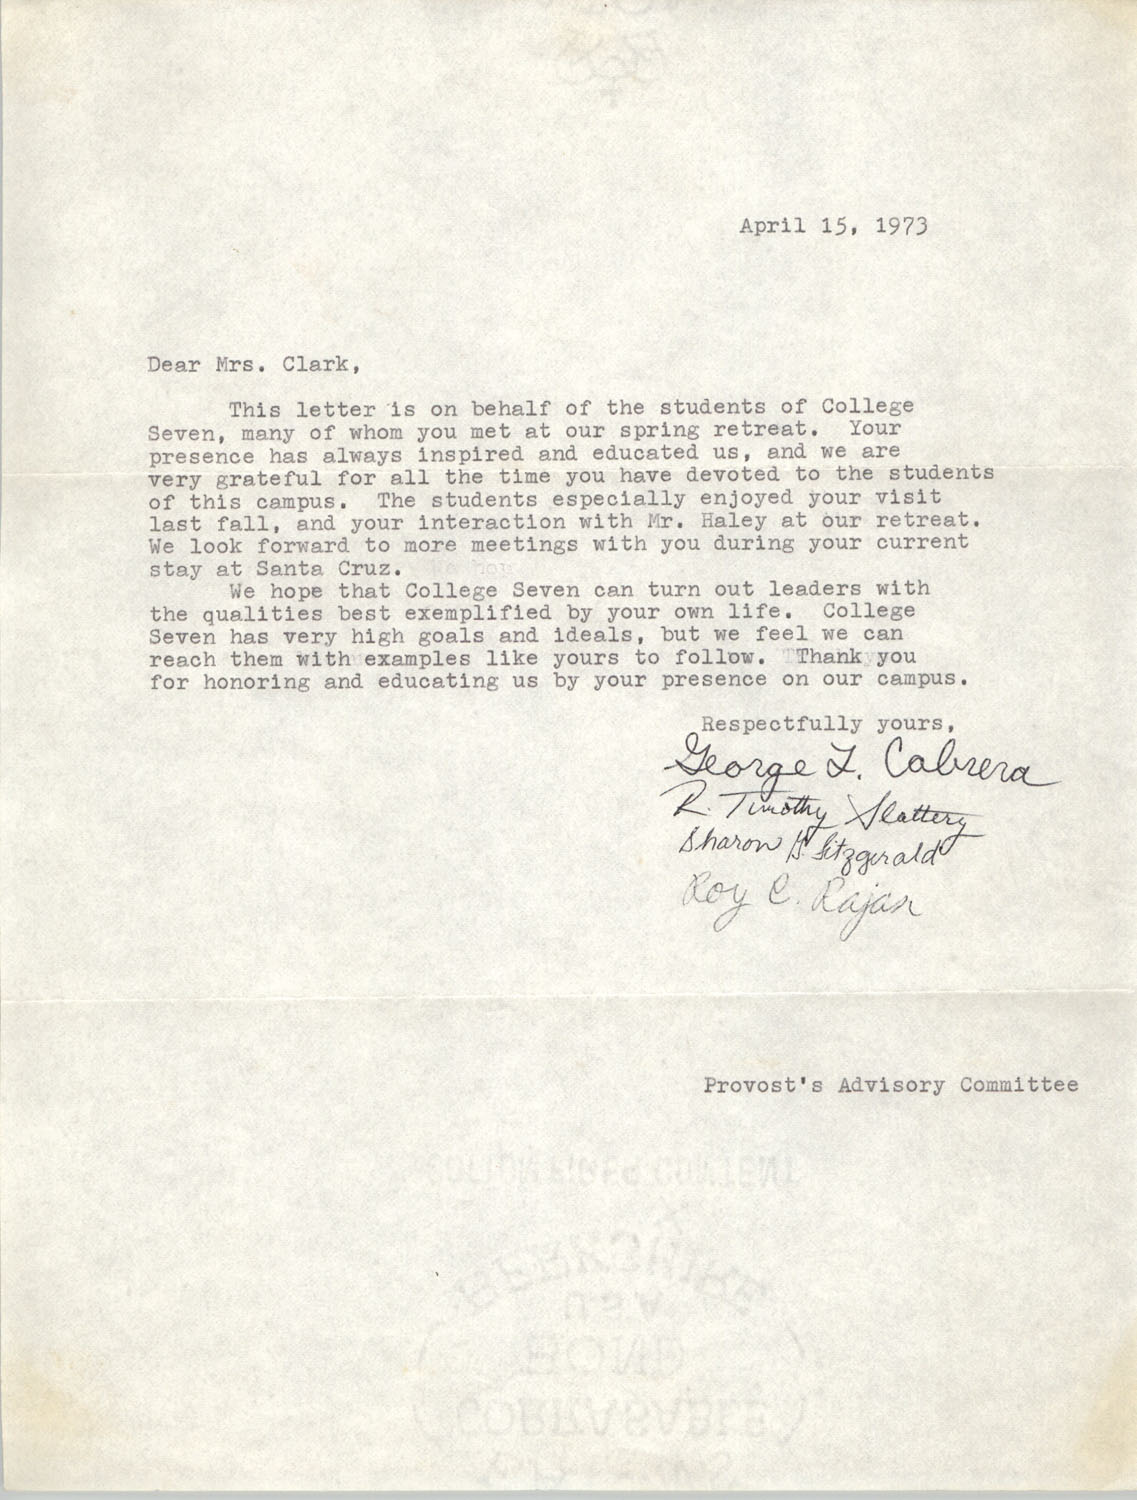 Letter from Provost's Advisory Committee to Septima P. Clark, April 15, 1973